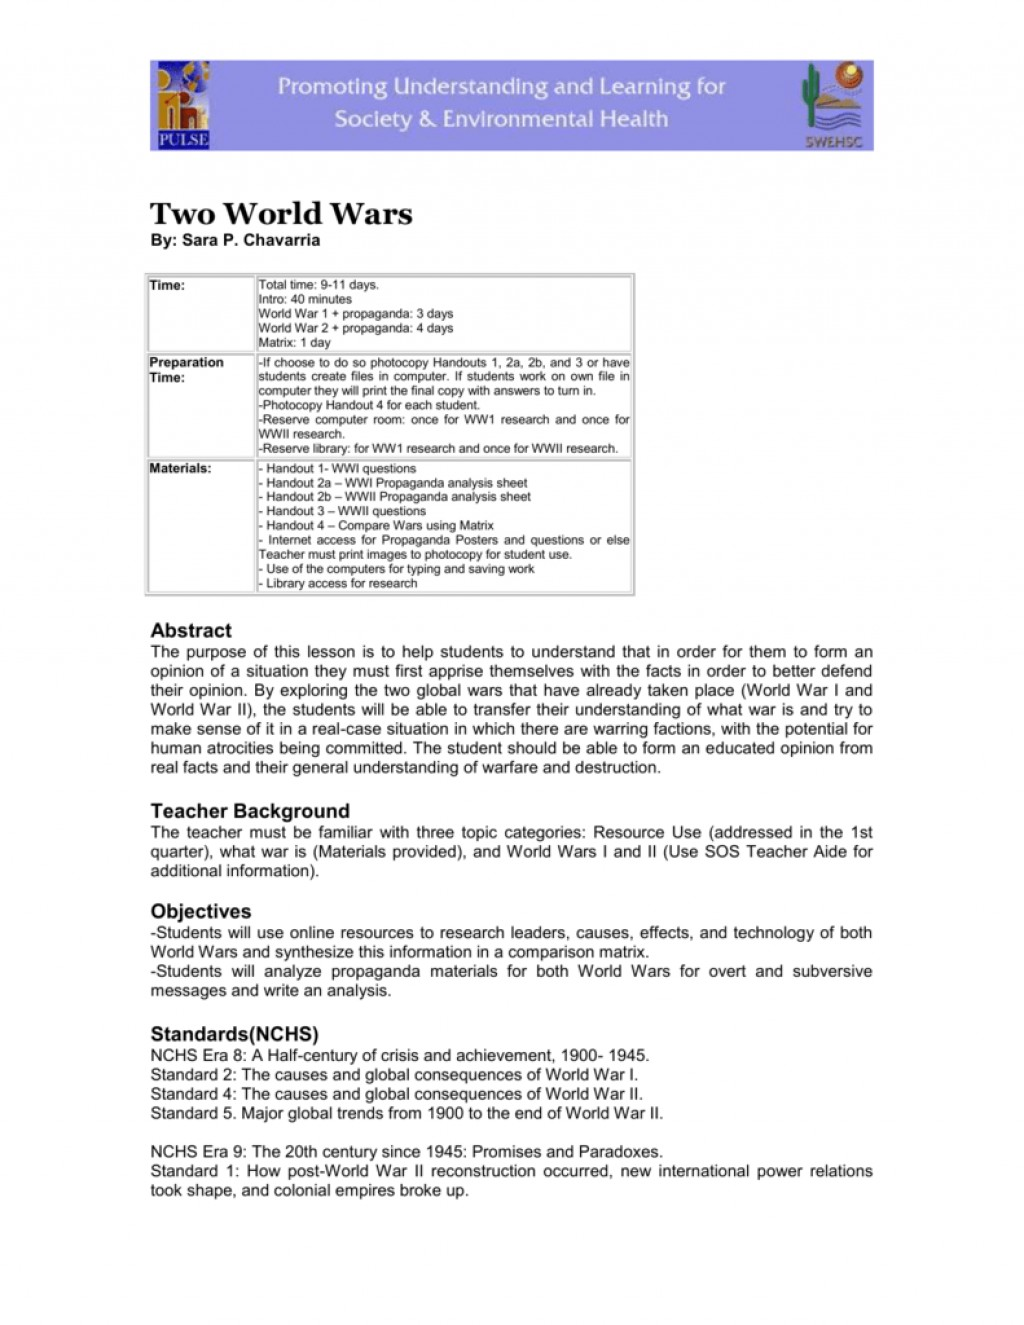 016 World War Essay Example 008021796 1 Outstanding 2 Causes Of Questions Hooks Large